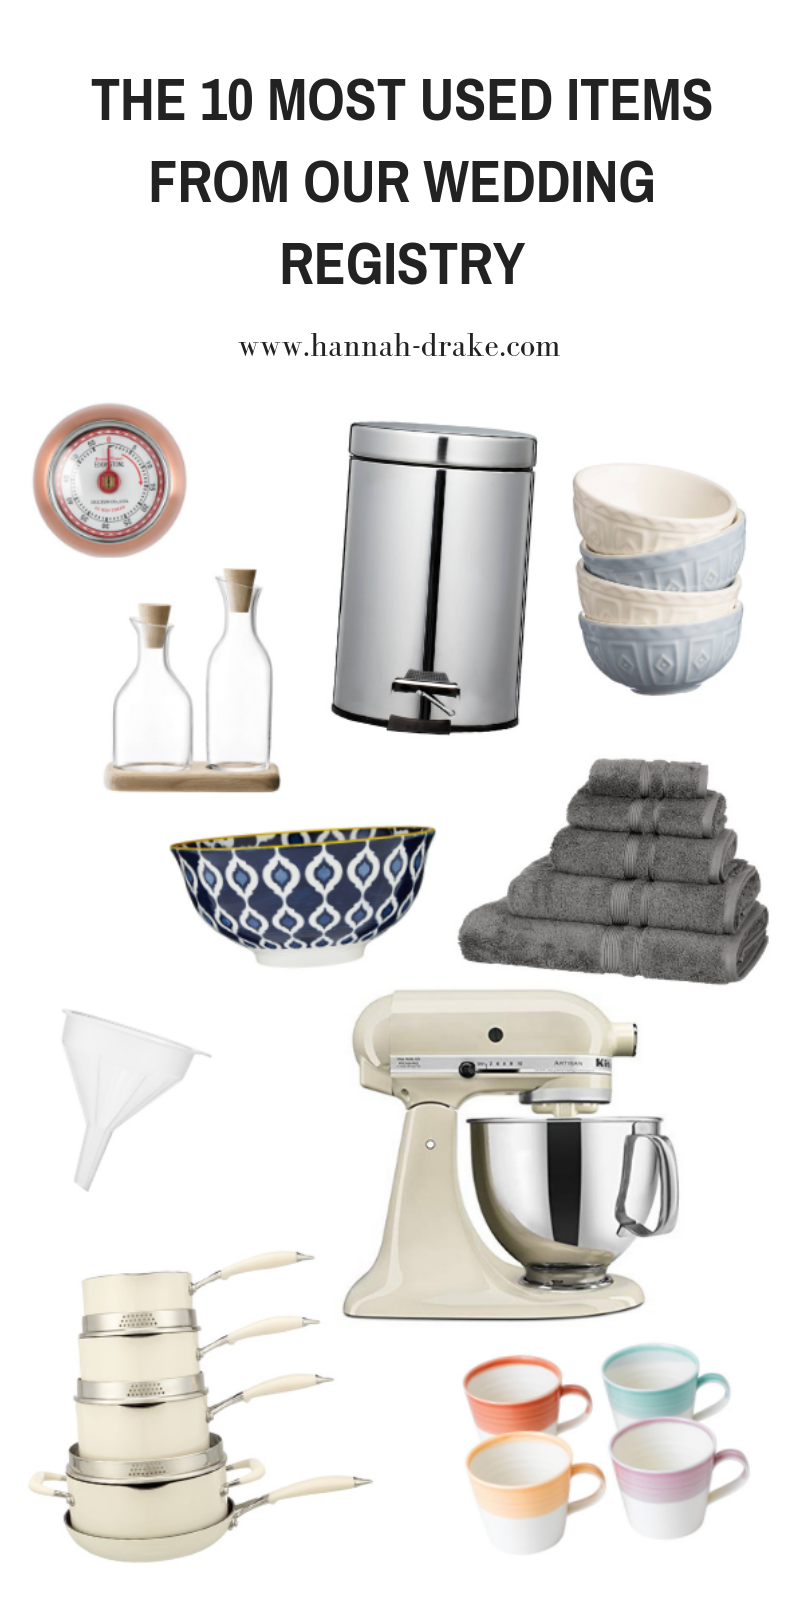 The 10 Most Used Items From Our Wedding Registry